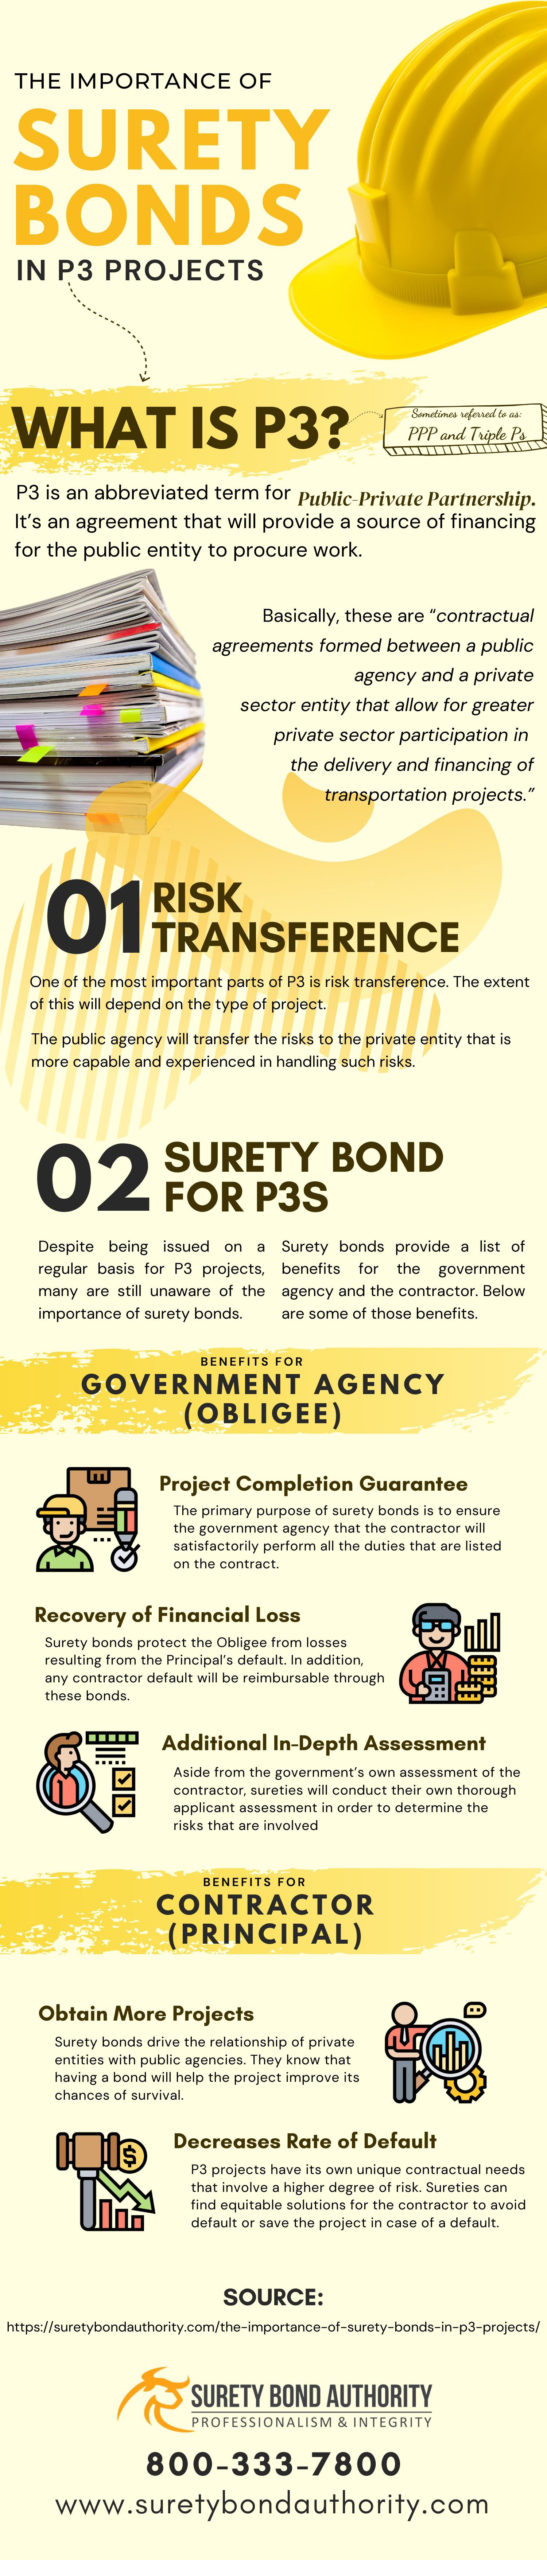 Surety Bonds in P3 Projects